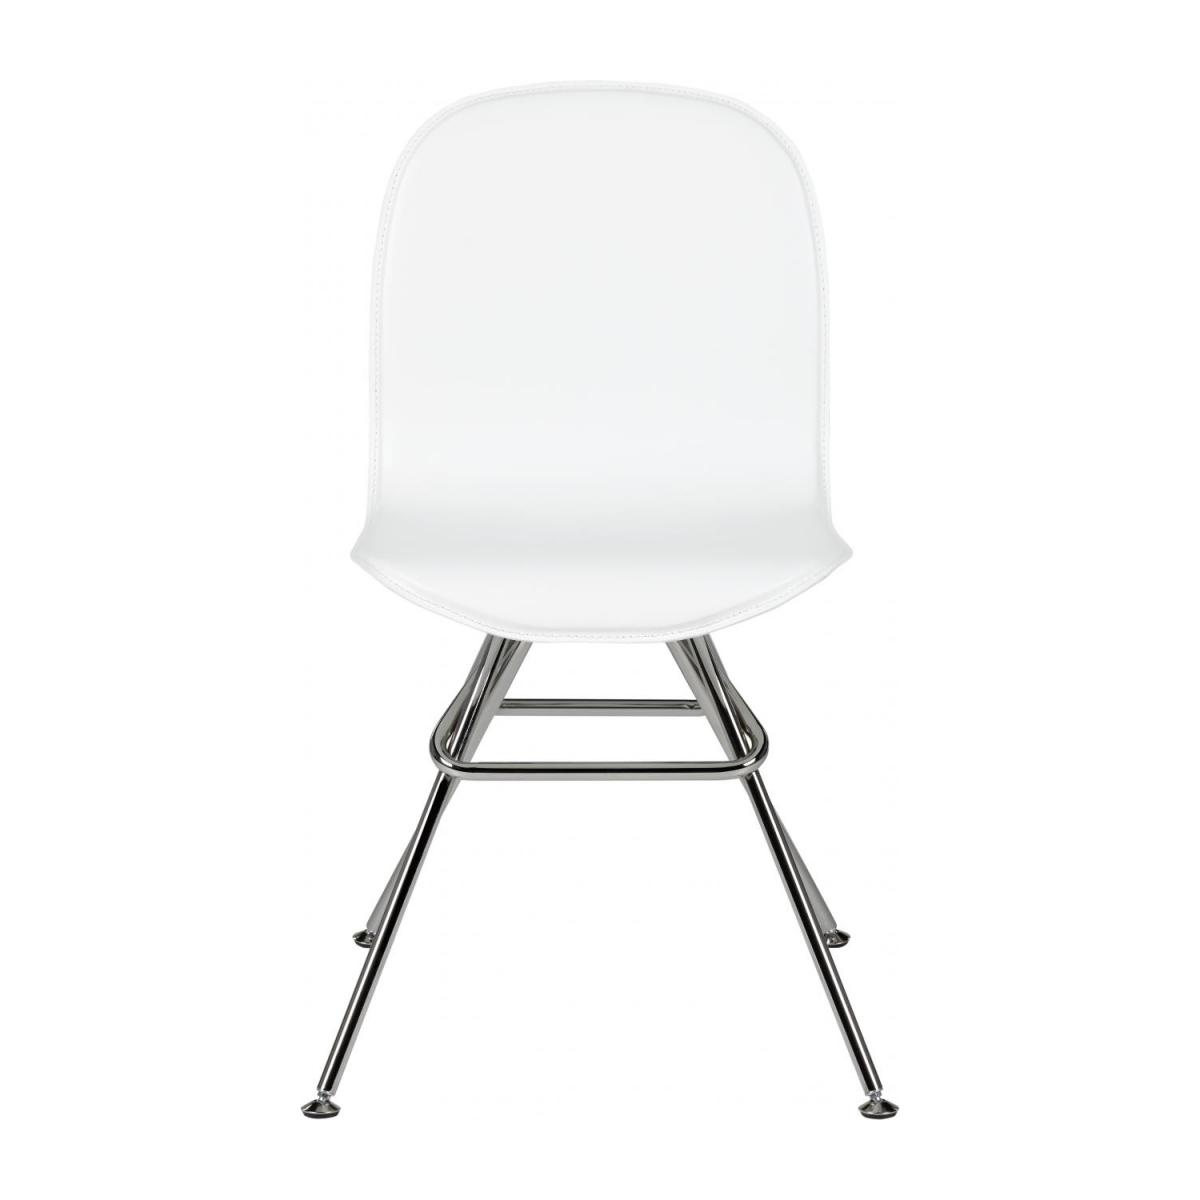 Chair with white faux leather cover and chrome steel legs n°2